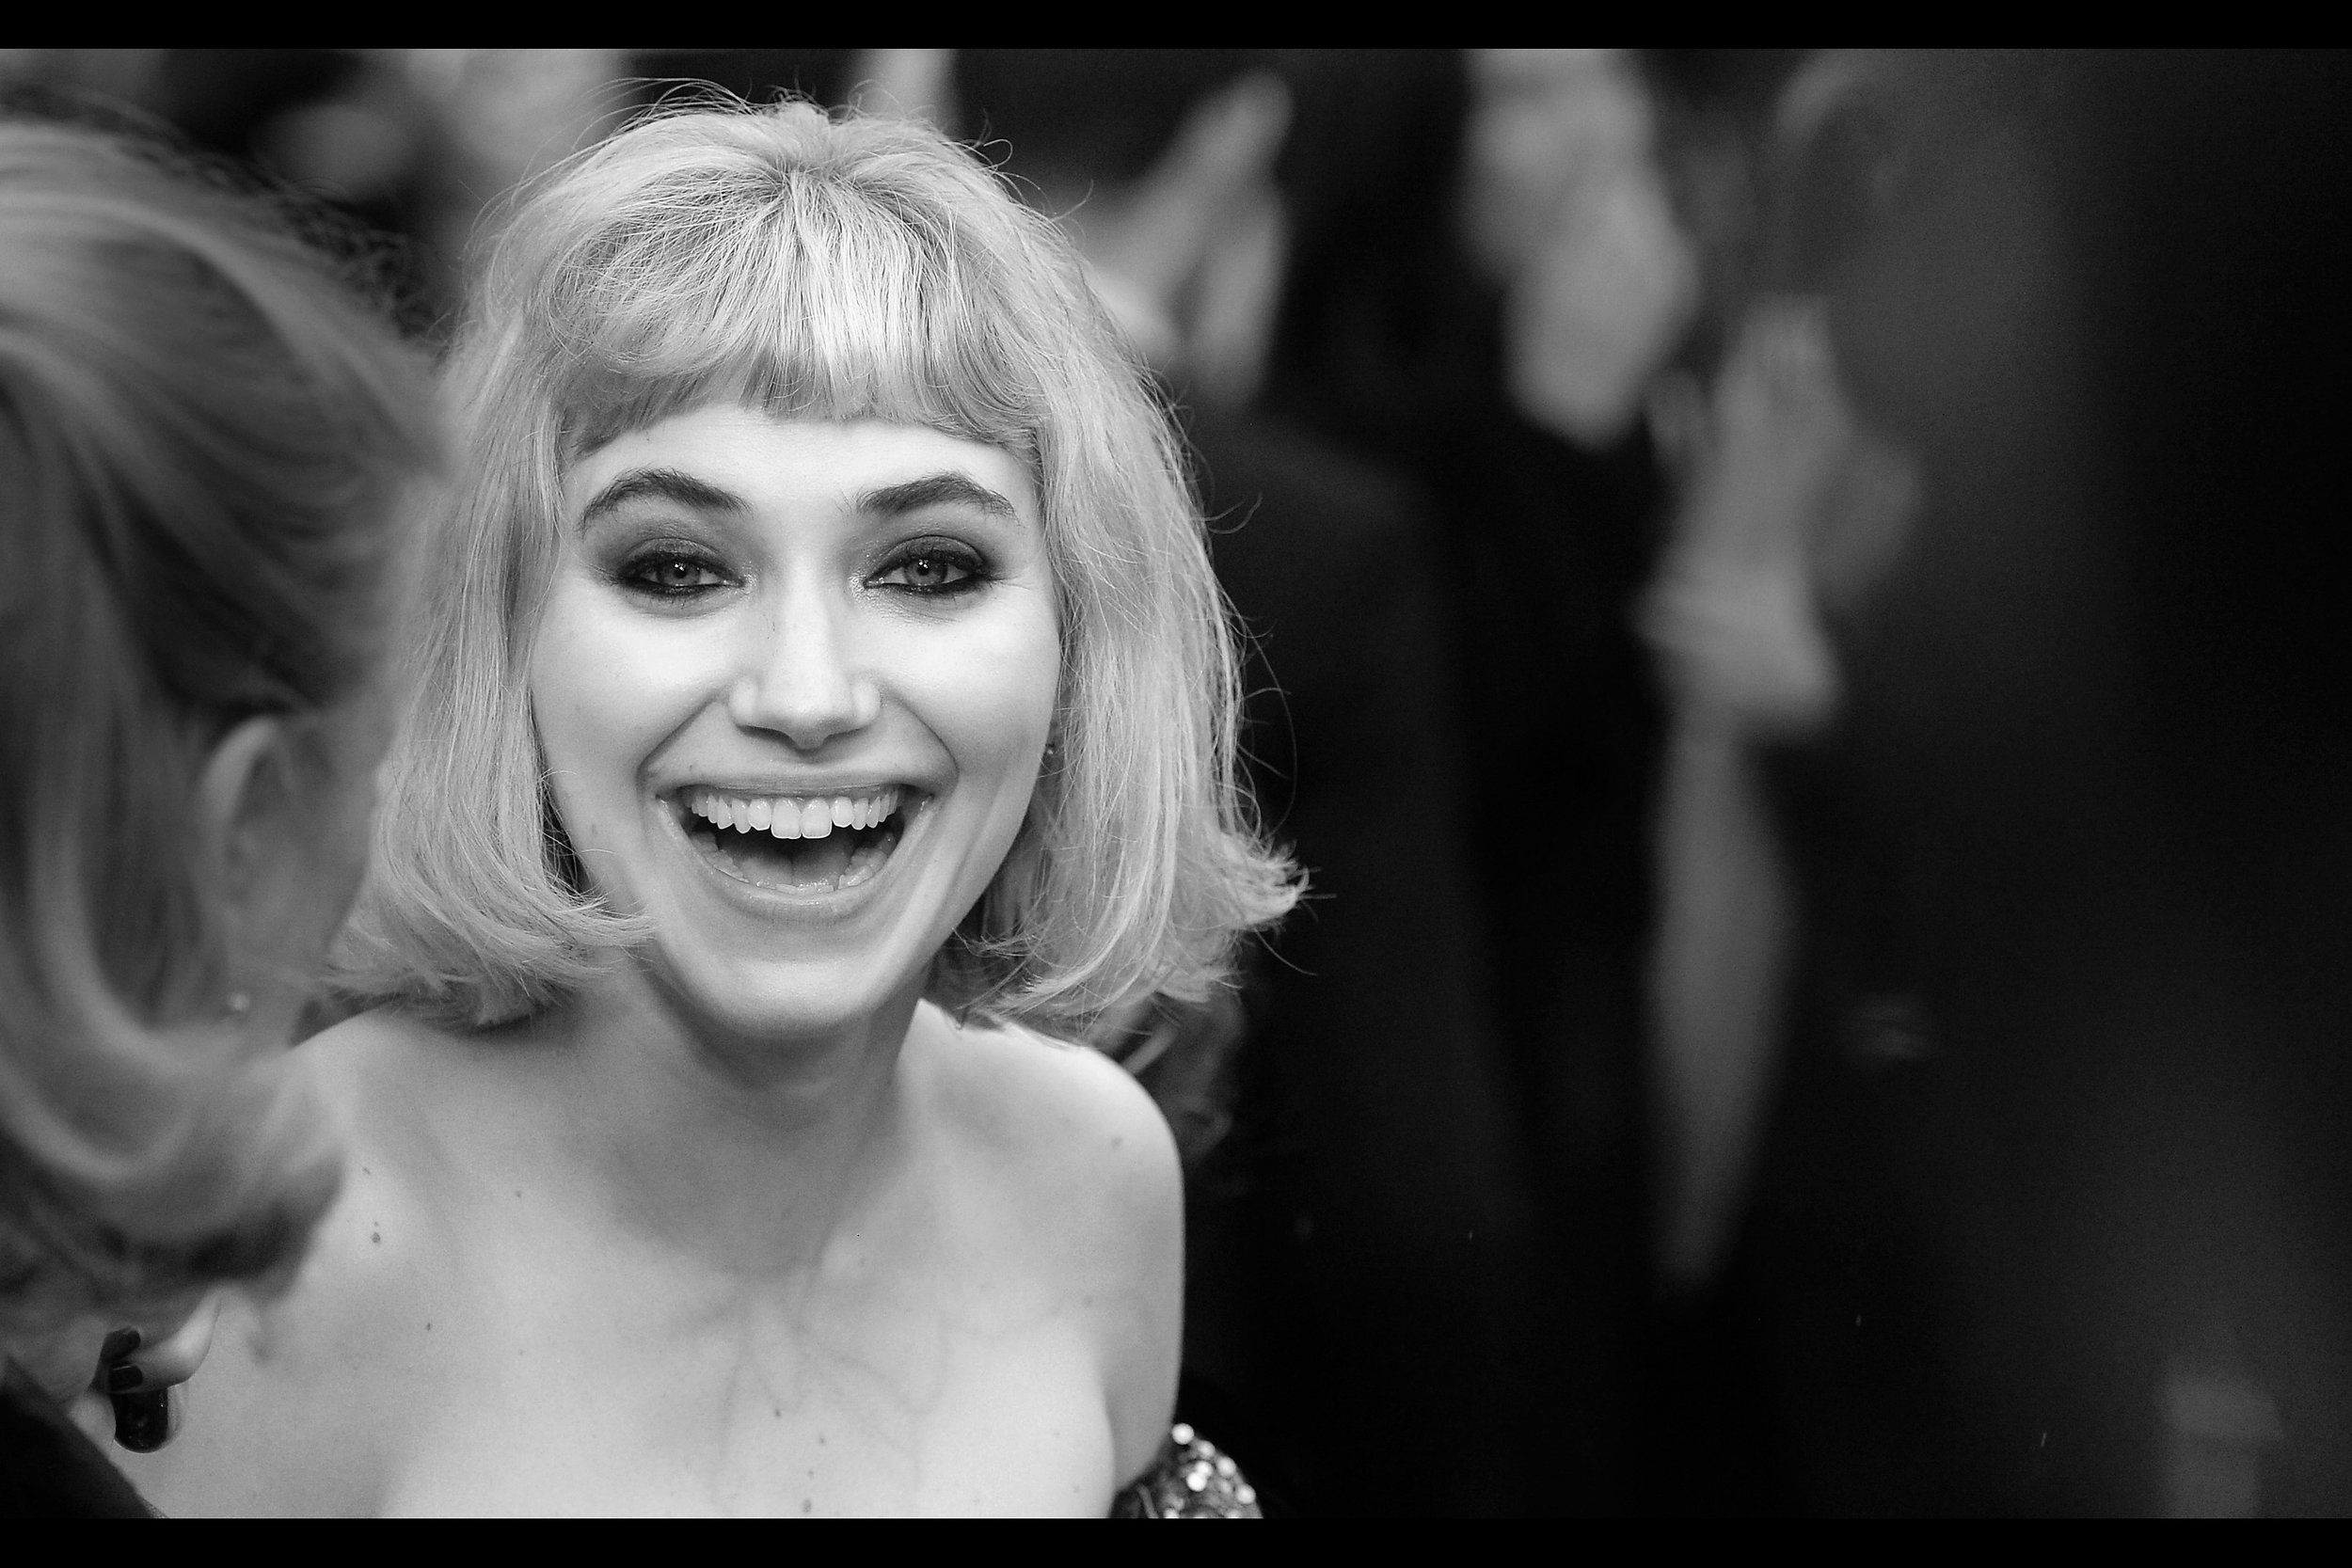 """""""That network of veins across my chest is a weird thing to mention in that comment you're going to write"""".  That Awkward Moment (2014), appropriately, is another movie Imogen Poots has been in ."""